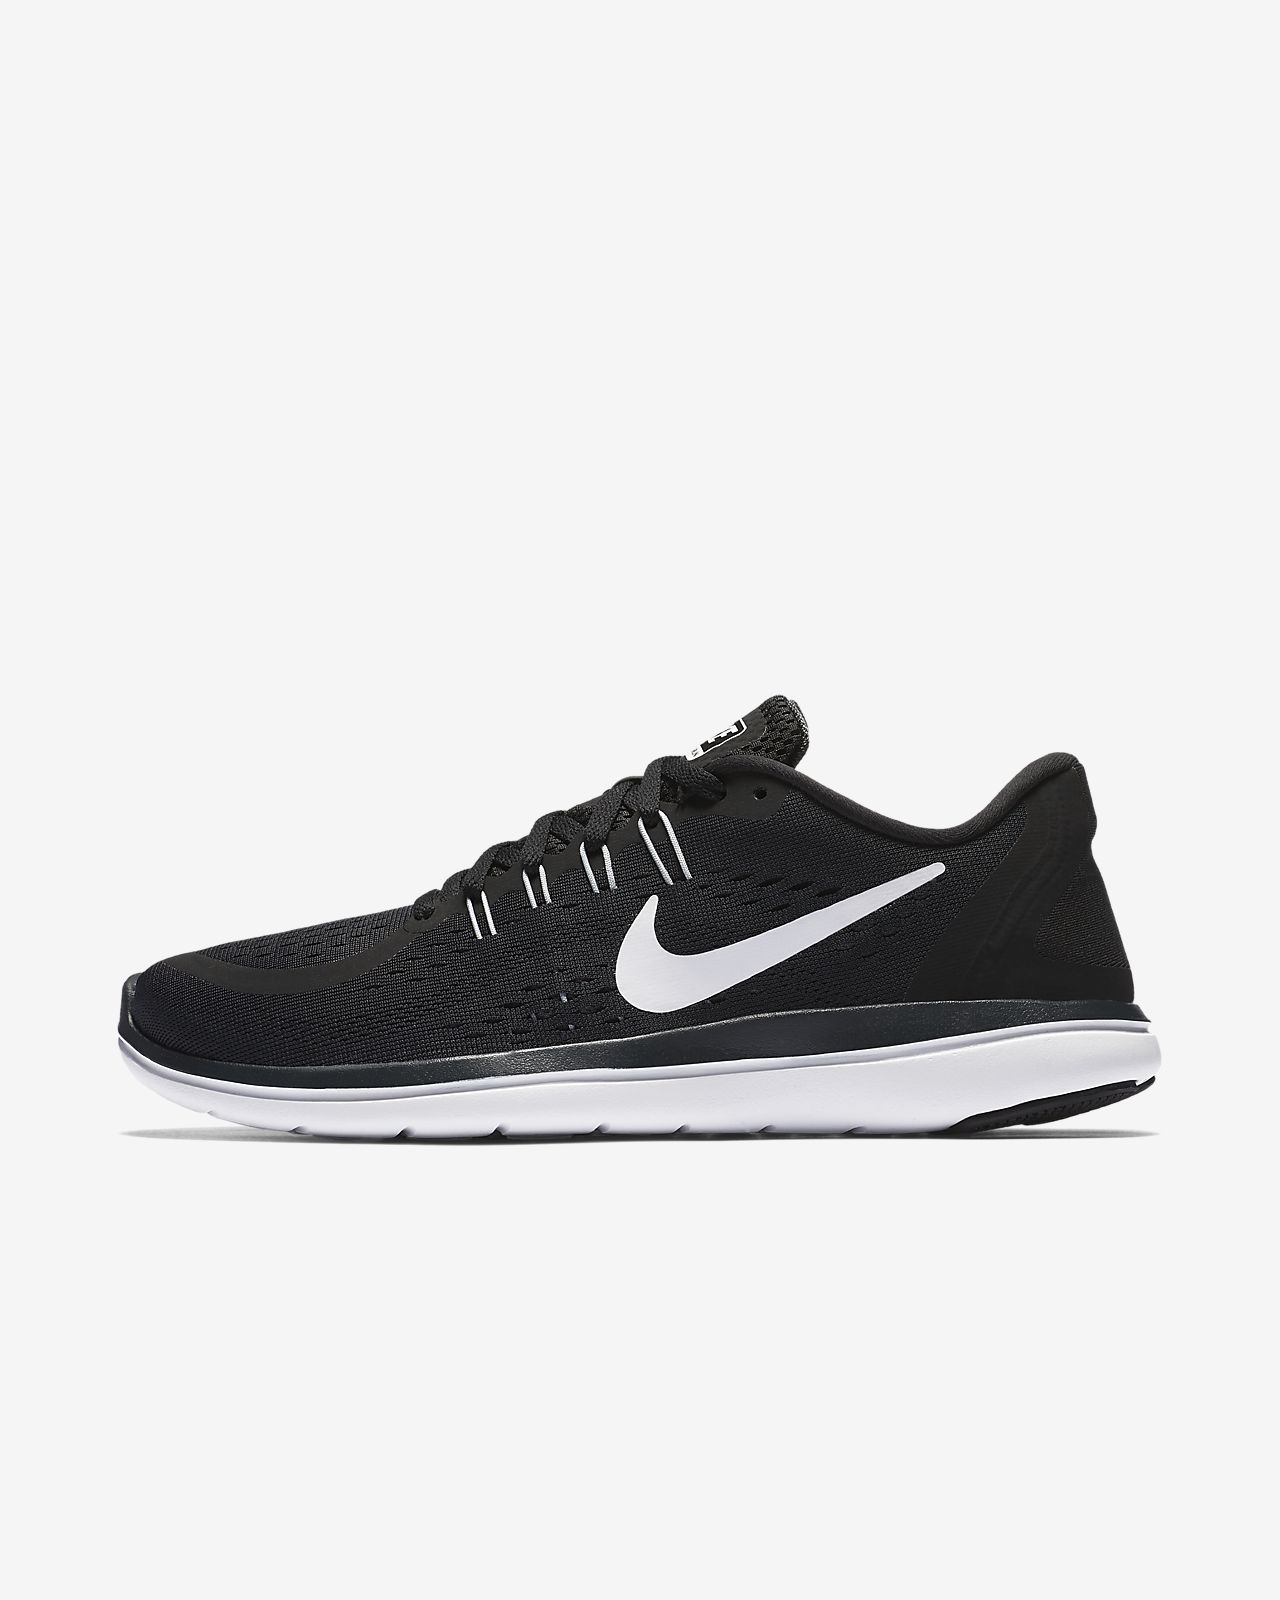 Nike 2017 Running Shoes view cheap online J3Zd31